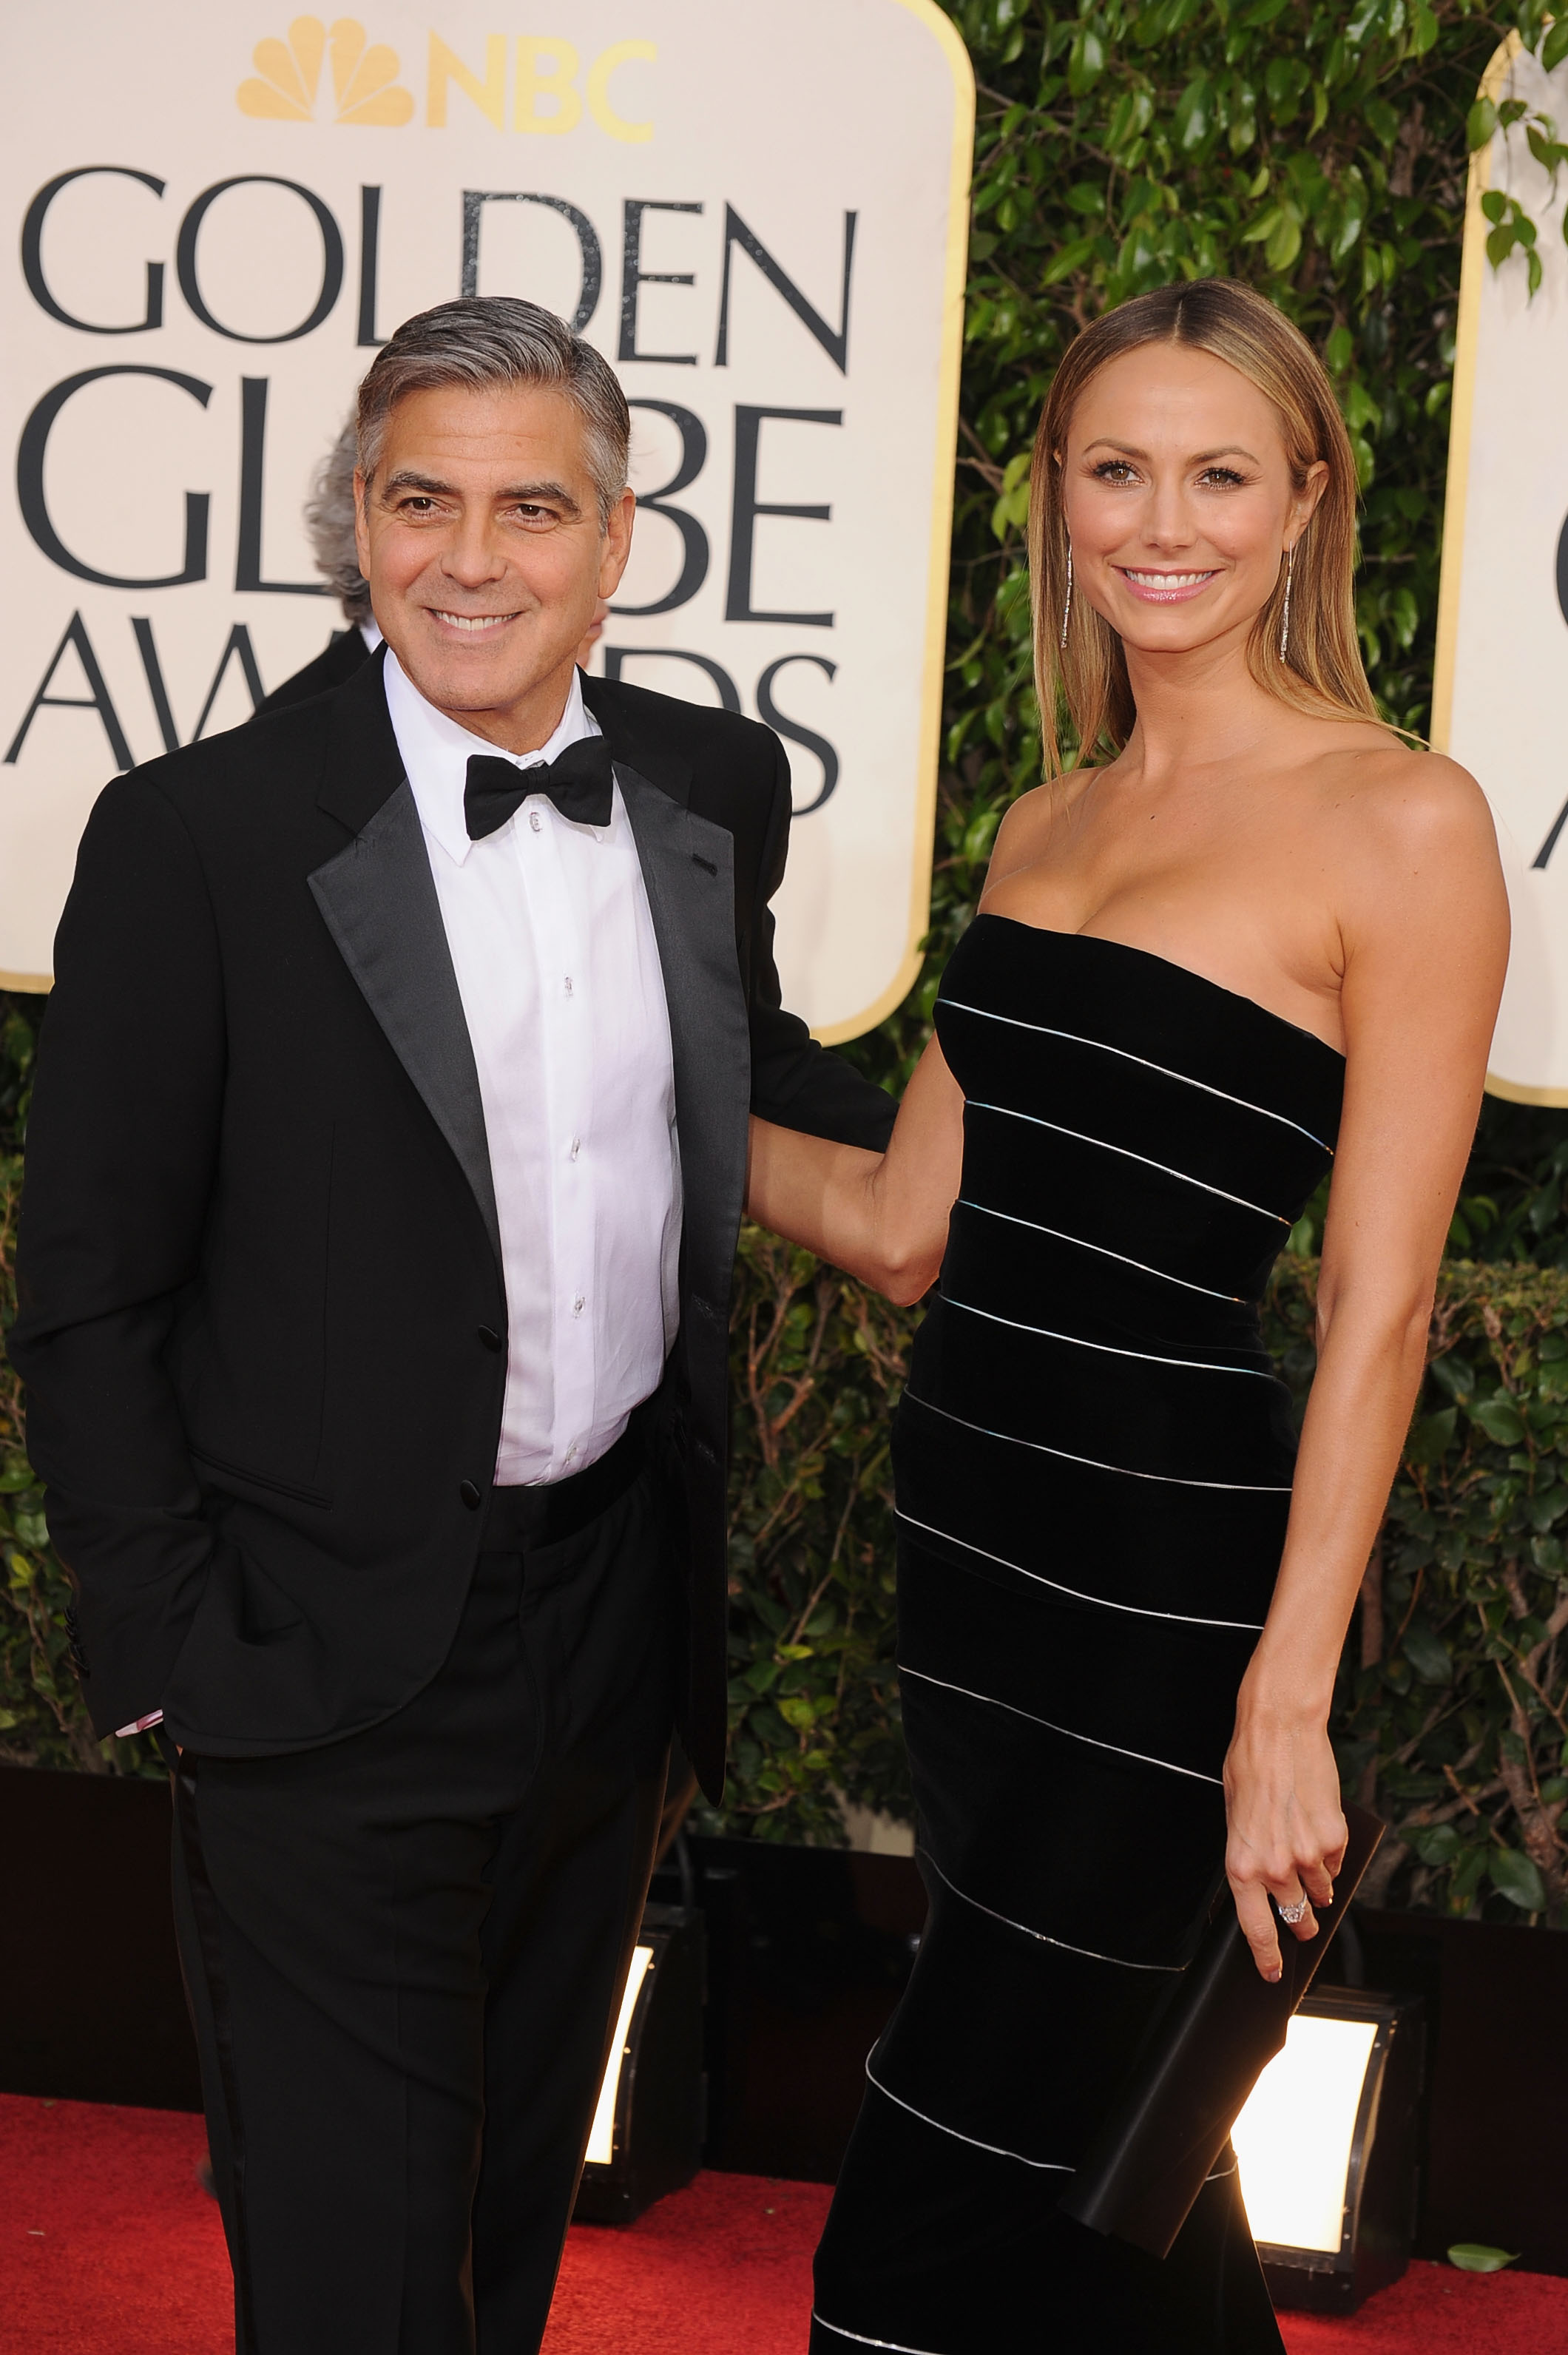 George Clooney had Stacy Keilber as his Golden Globes date.